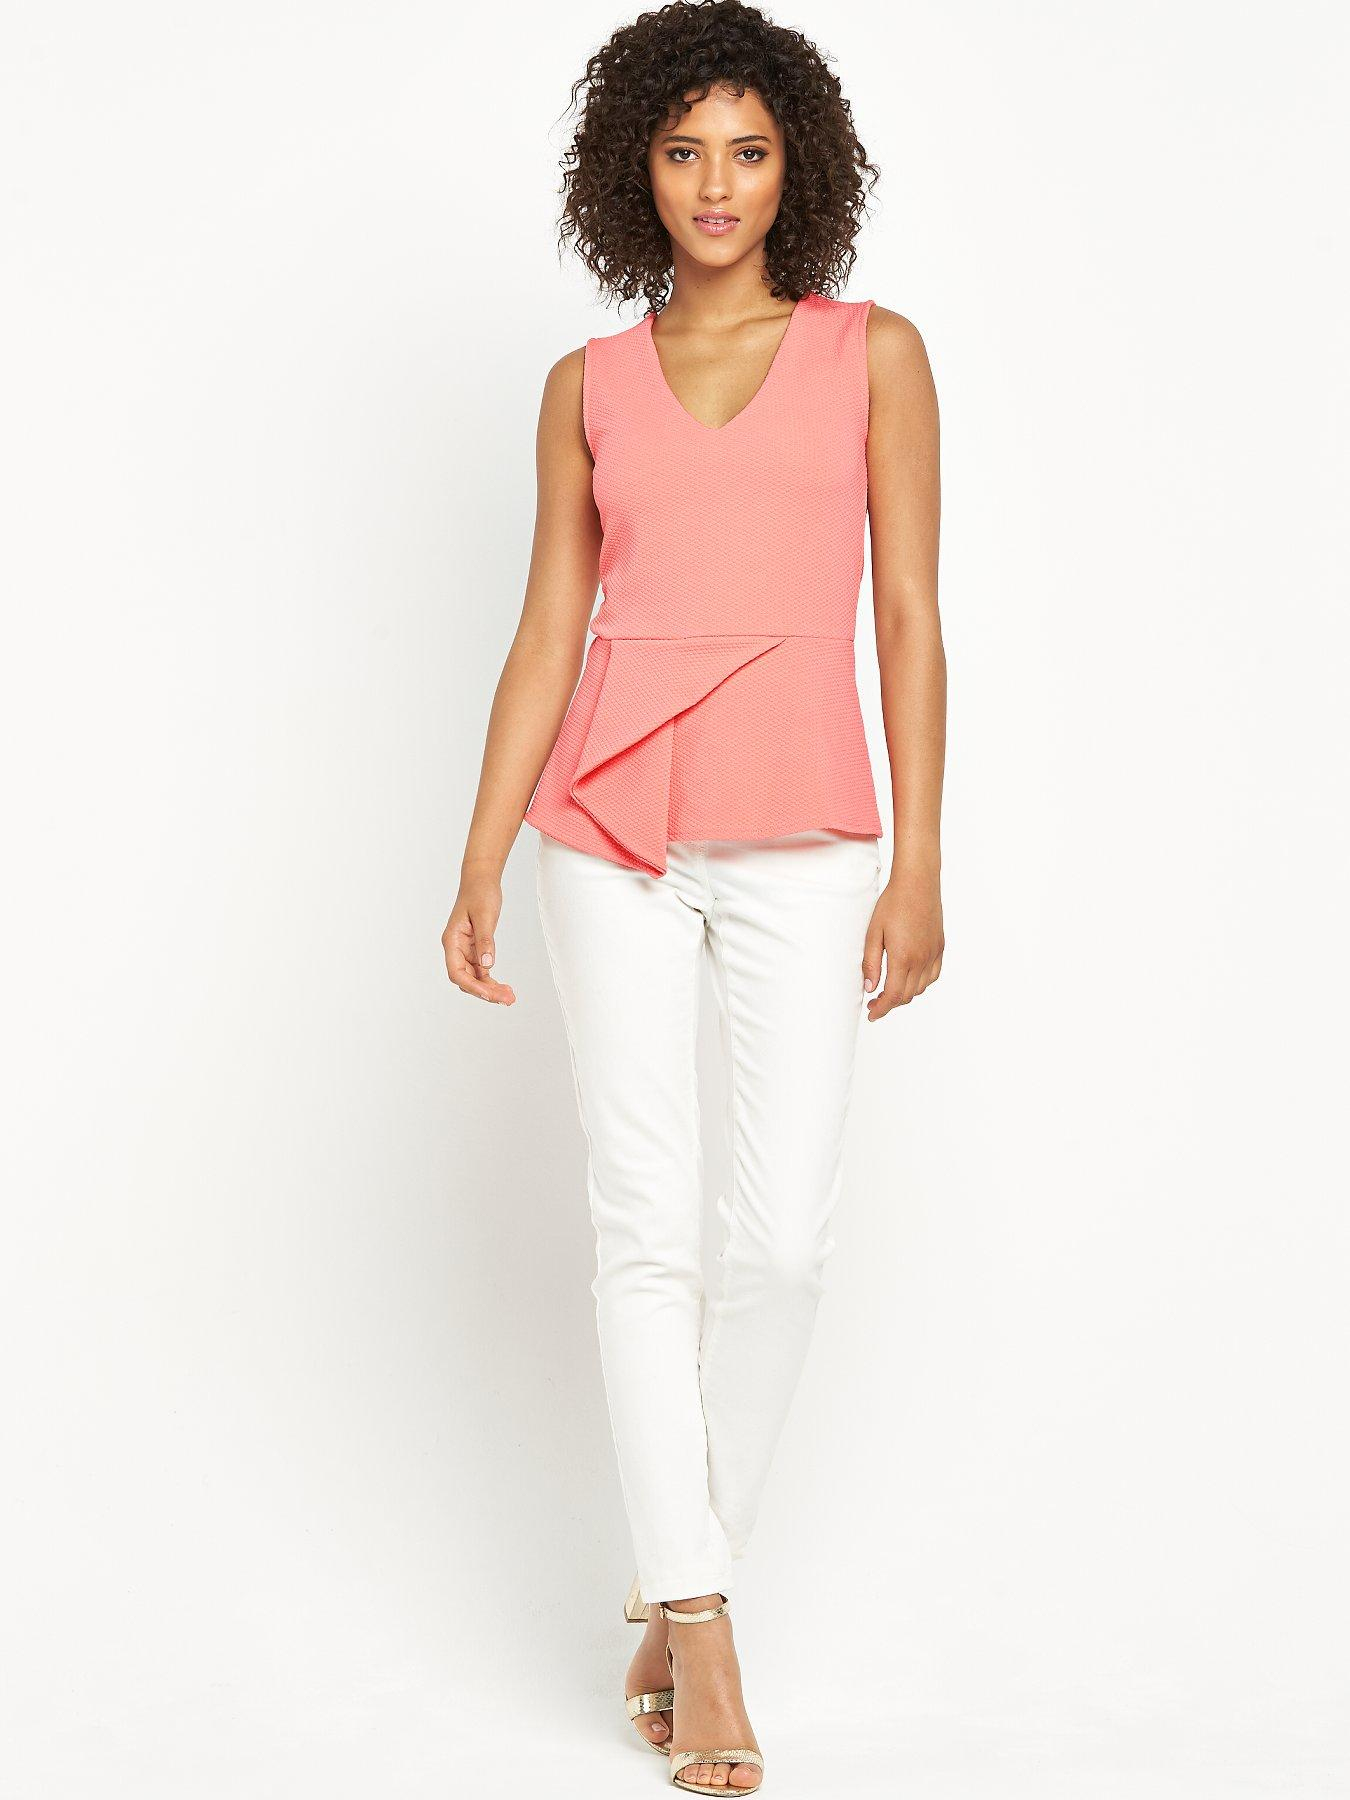 Definitions Aysmmetric Peplum Top